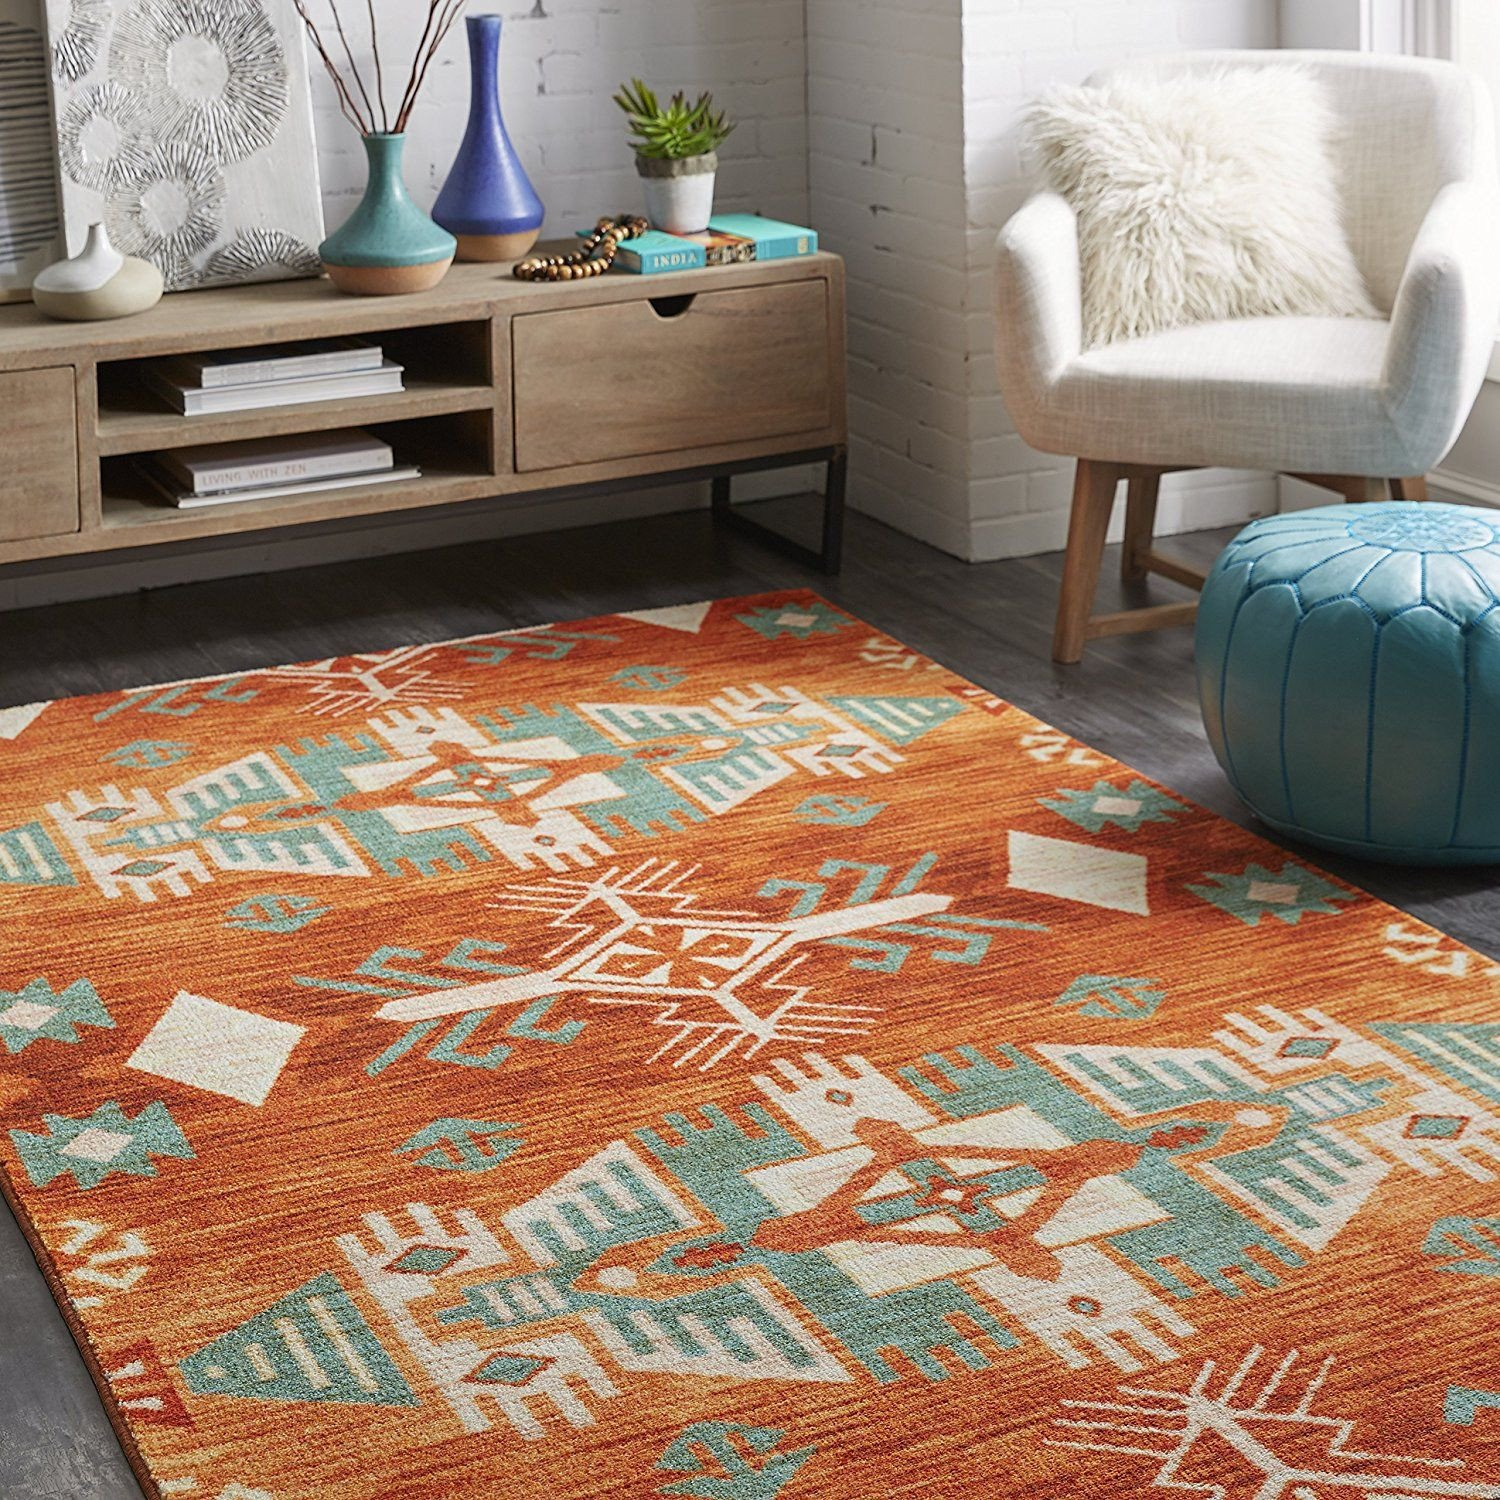 Accent Rugs for Bedroom Fresh Mohawk Home S Eidenau Sunset Aztec Rug Brings Boho to Your